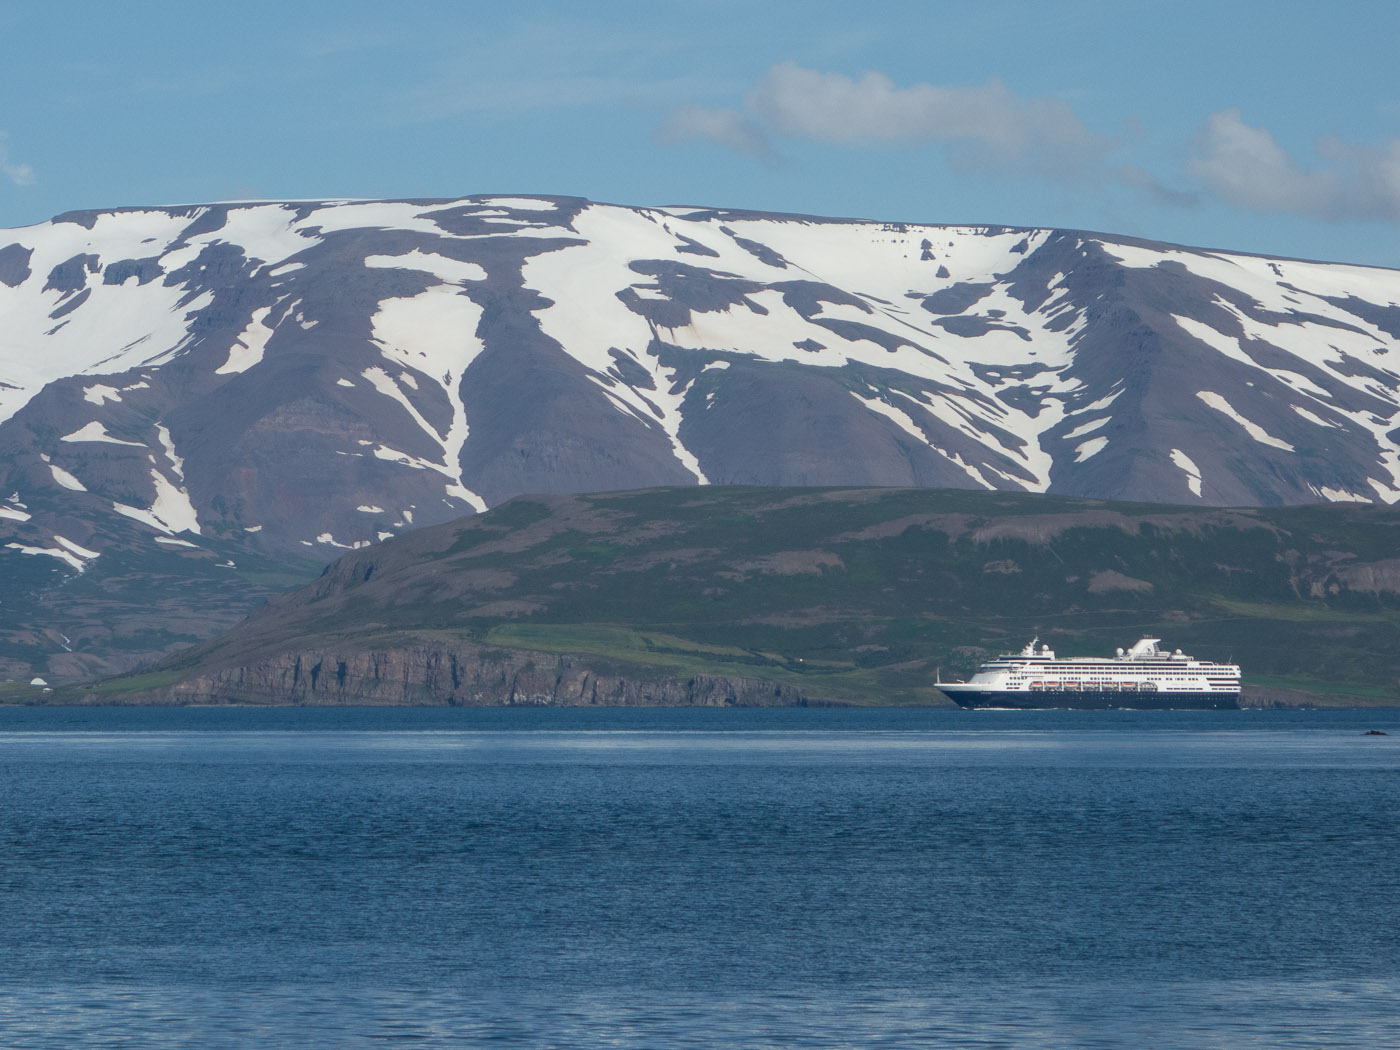 Northern Iceland - Hrísey island. On vacation. - <a href='http://www.hrisey.net/en/' target='_blank' class='linksnormal'>Hrísey</a>. Hmmm, I don't like it so much ... (22 July 2014)